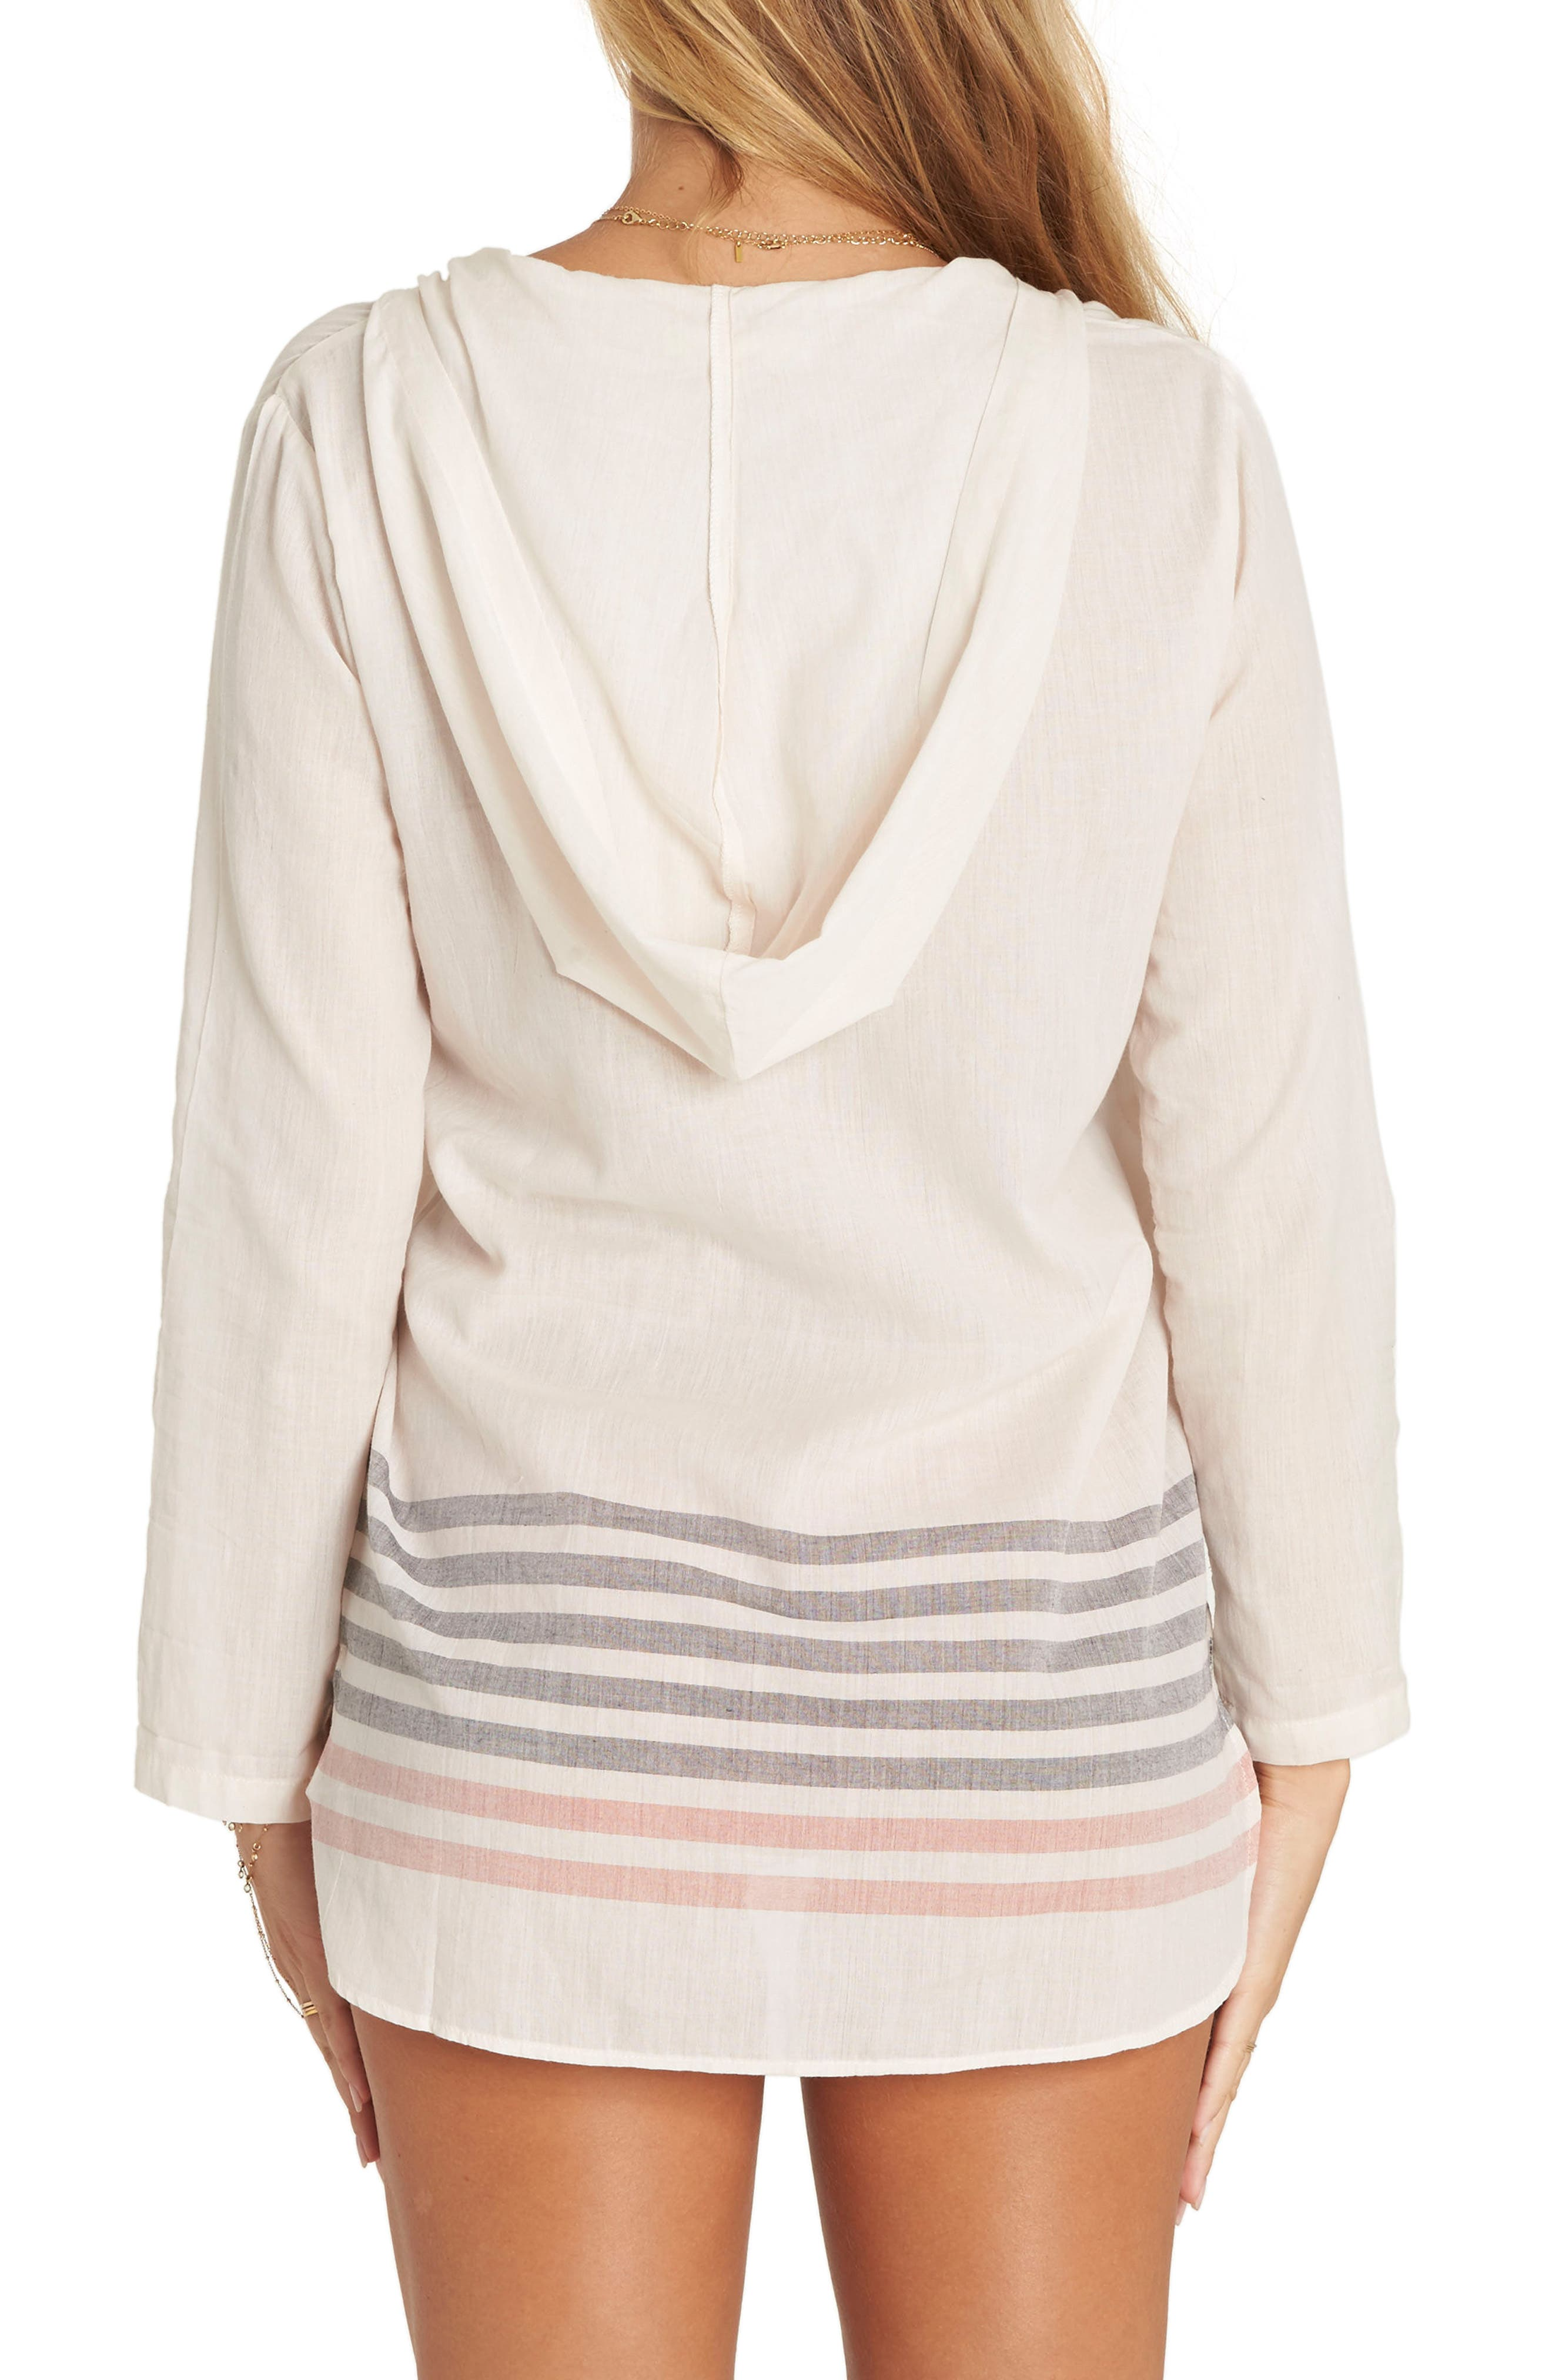 Same Story Cover-Up Tunic,                             Alternate thumbnail 2, color,                             Ivory Multi